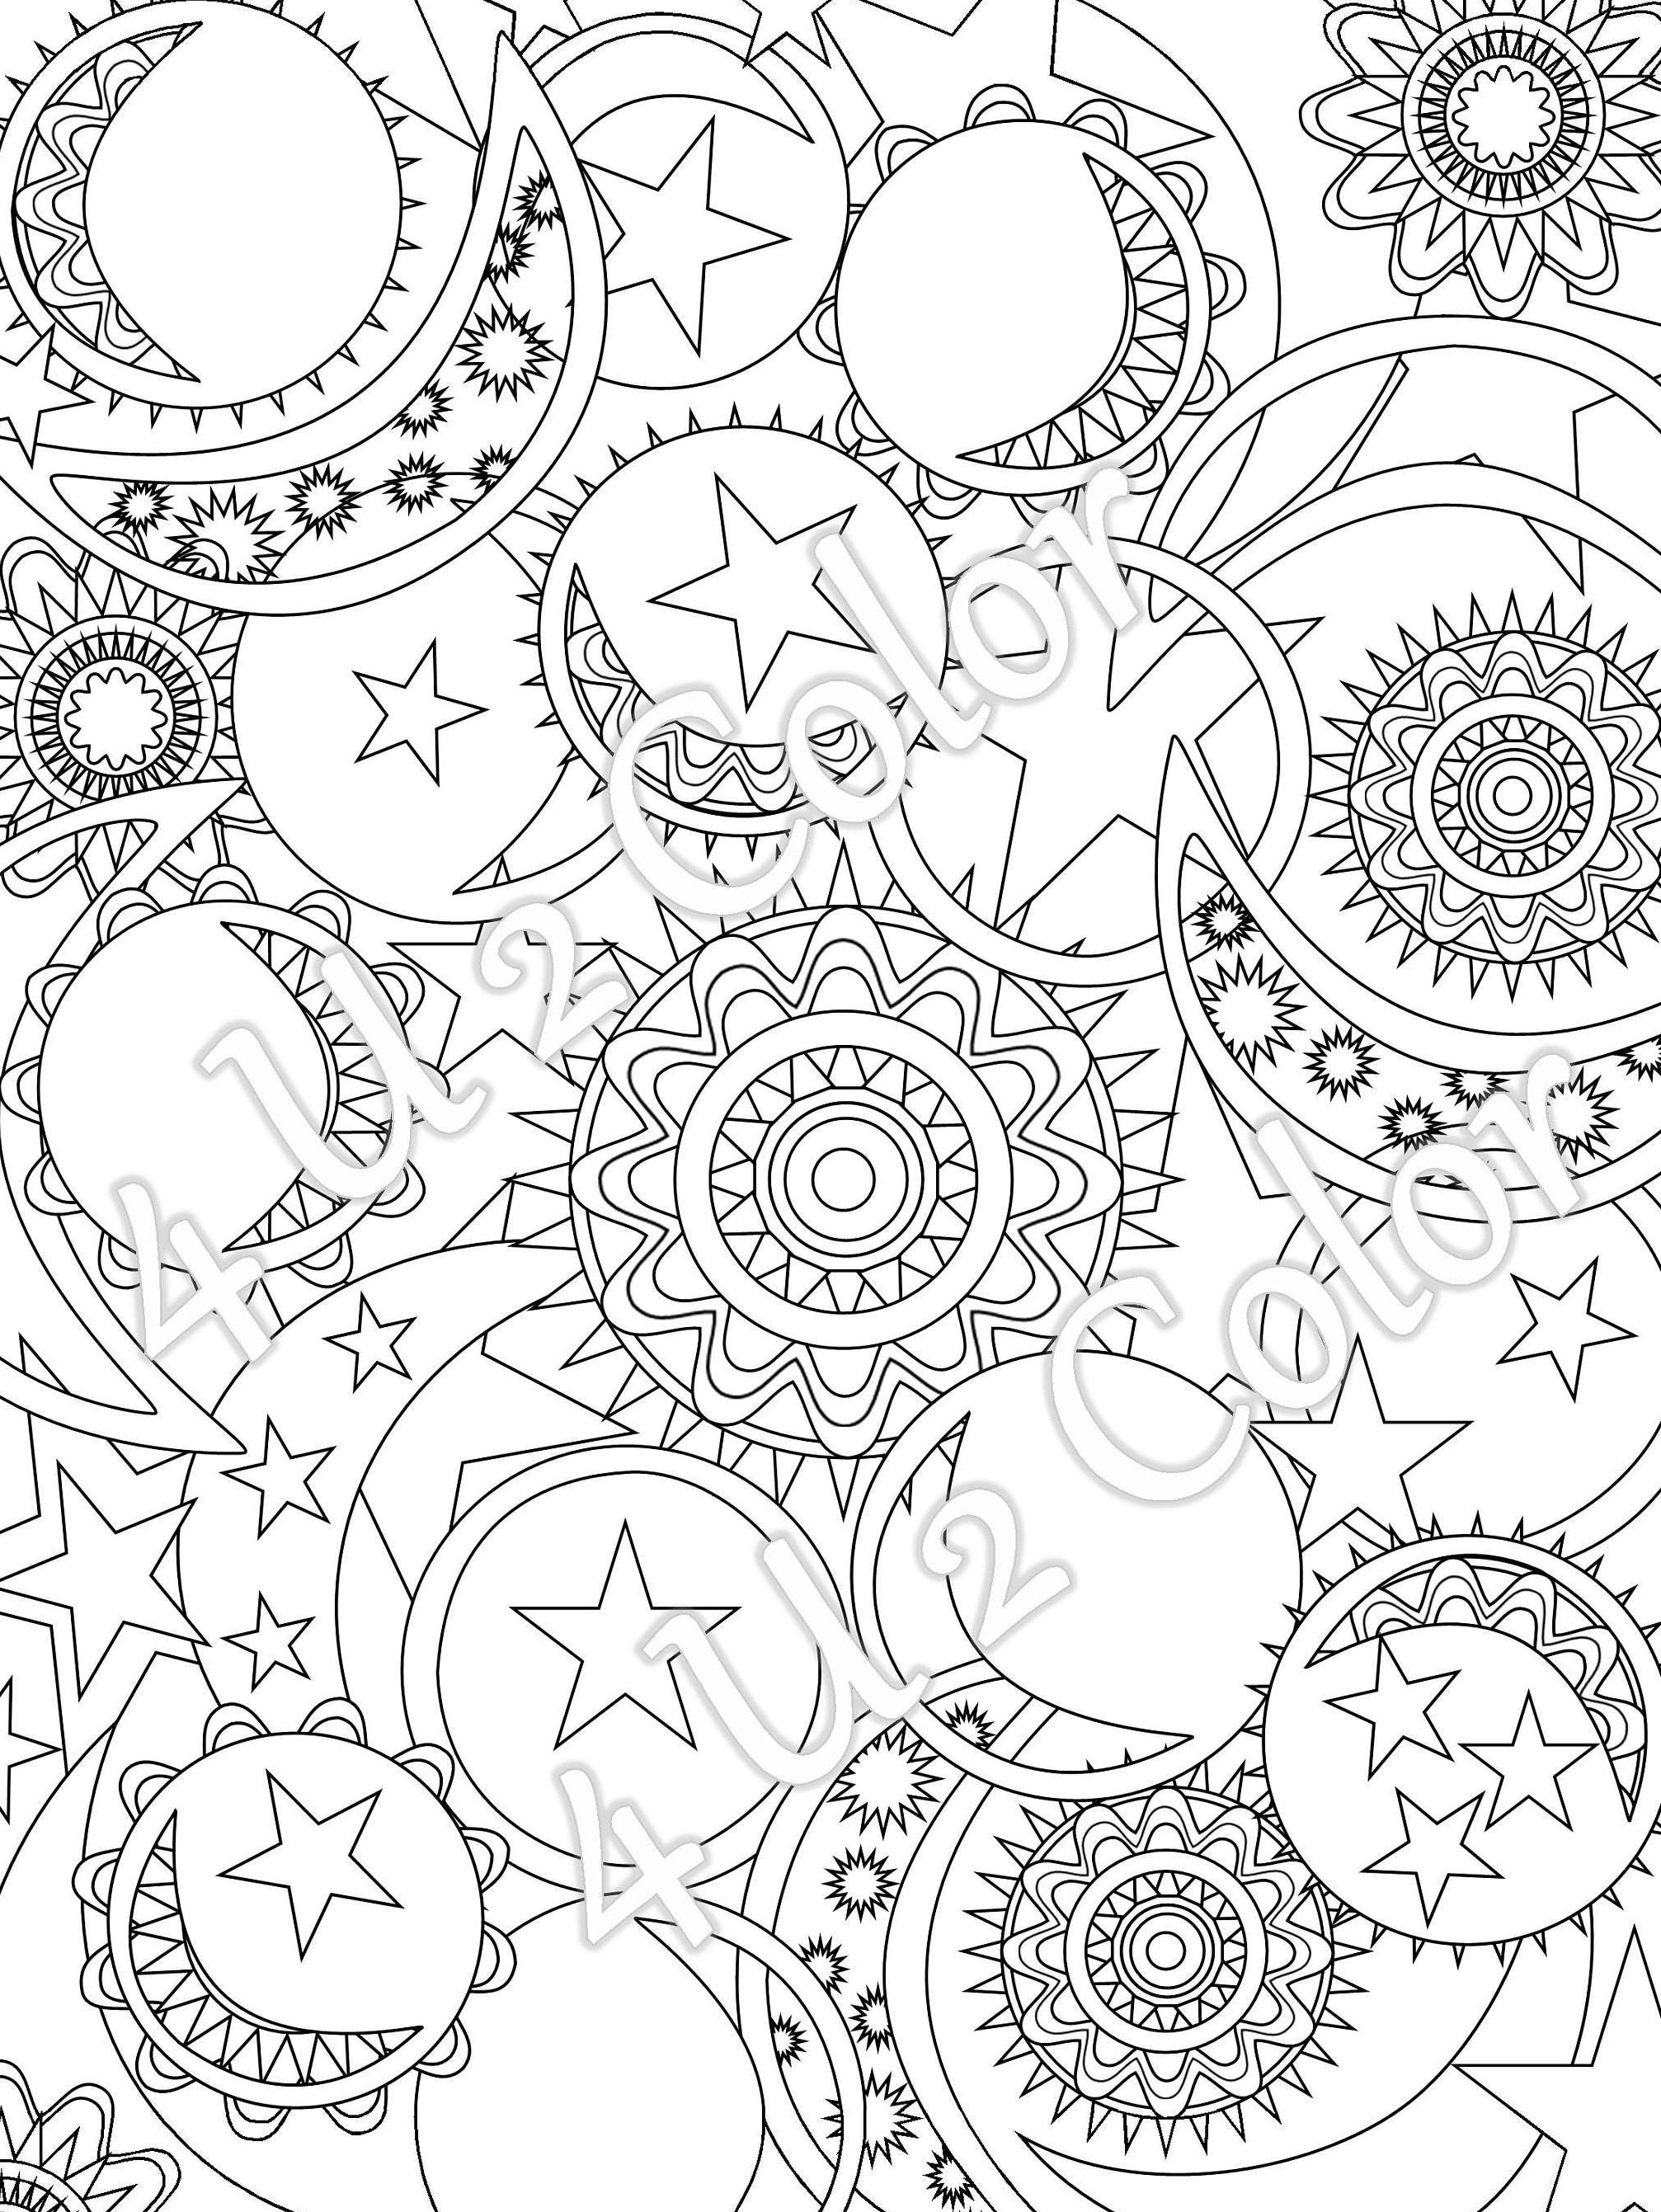 Sun And Moon Coloring Pages For Adults at GetDrawings ...